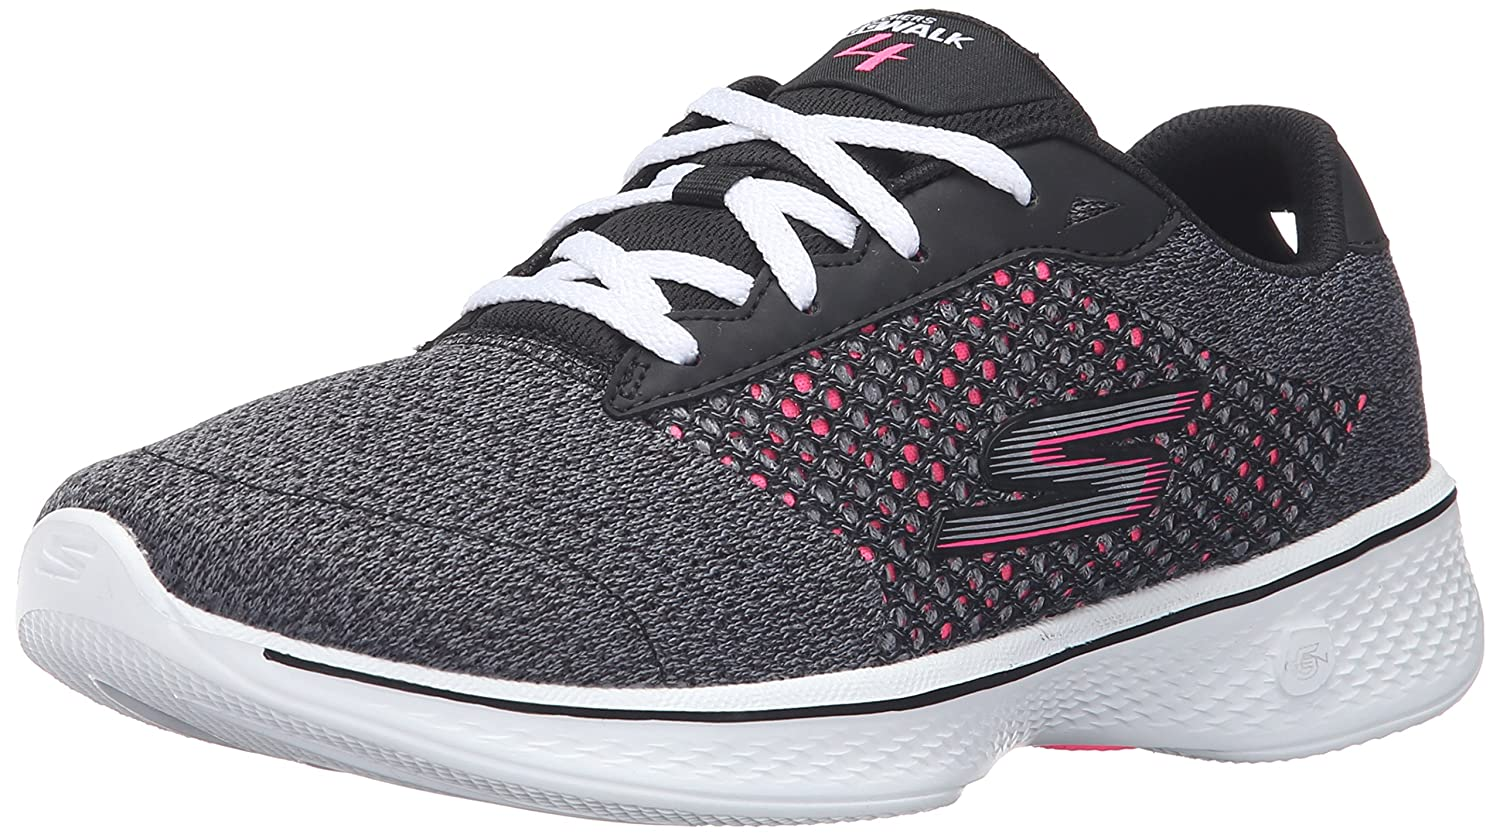 Skechers Performance Women's Go Walk 4 Exceed Lace-up Sneaker B01AH08UAE 6.5 B(M) US|Black/Hot Pink